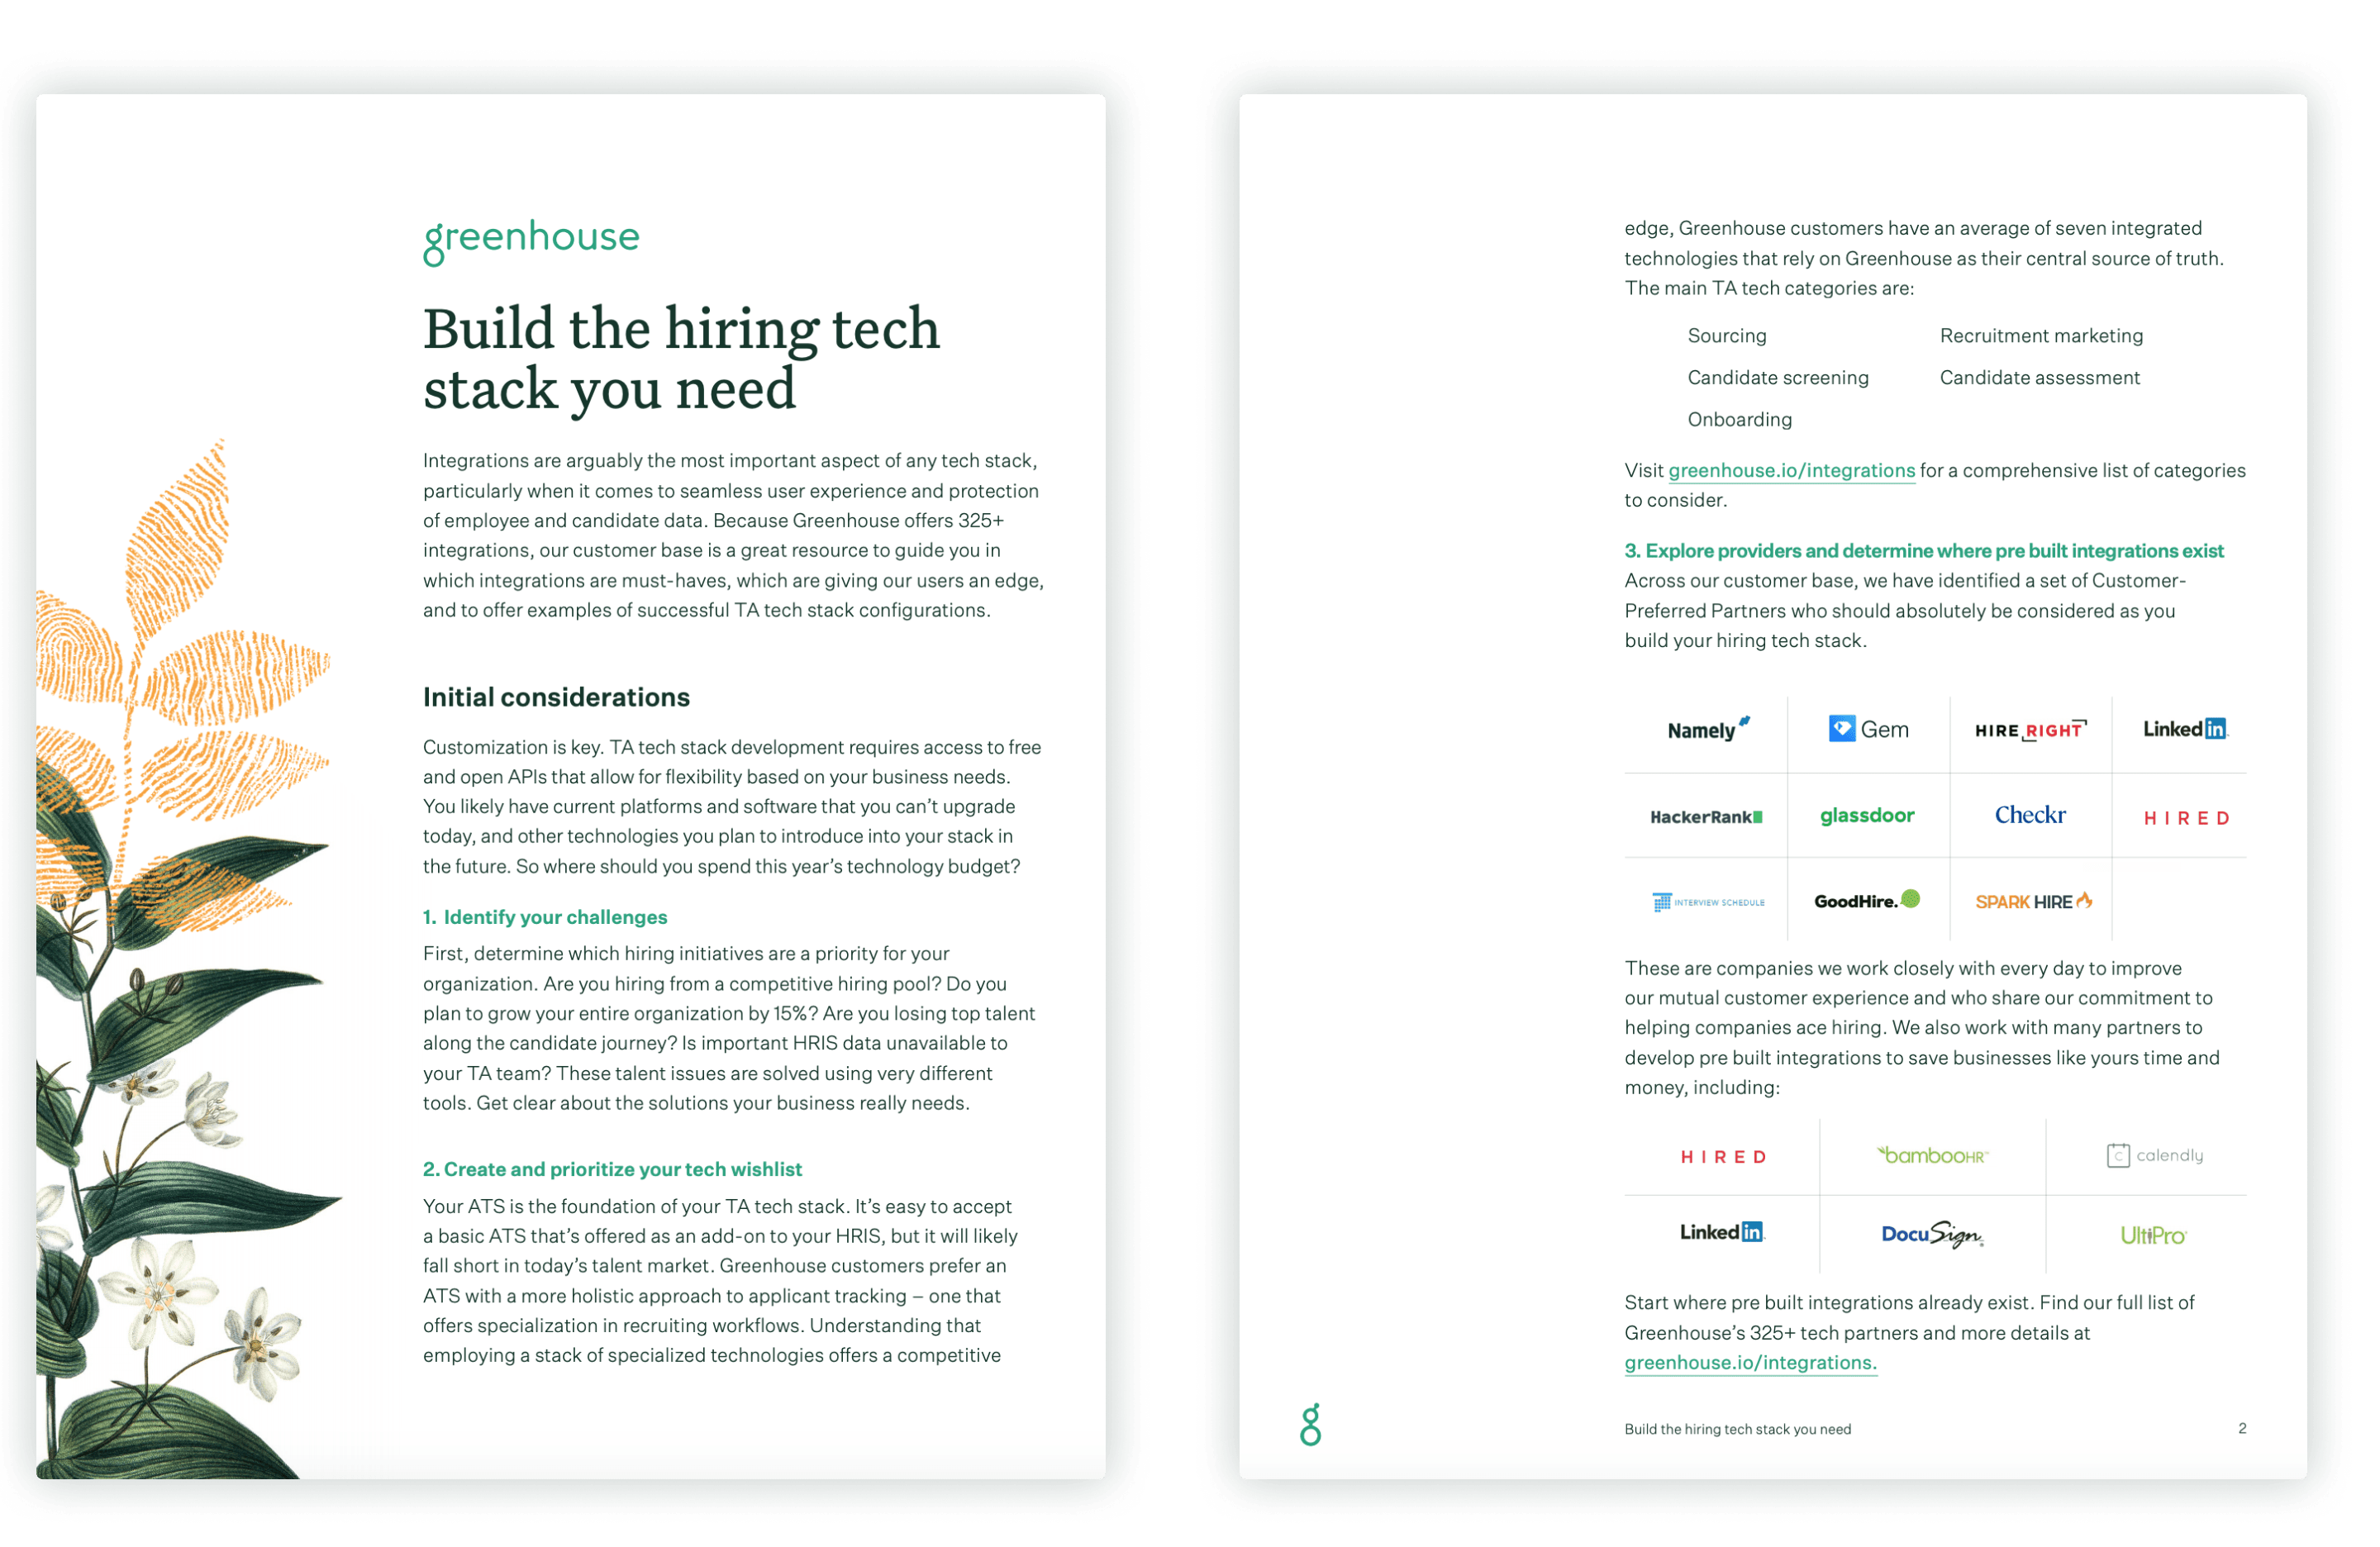 Sample pages of the Greenhouse seamless integrations and tech stack guide